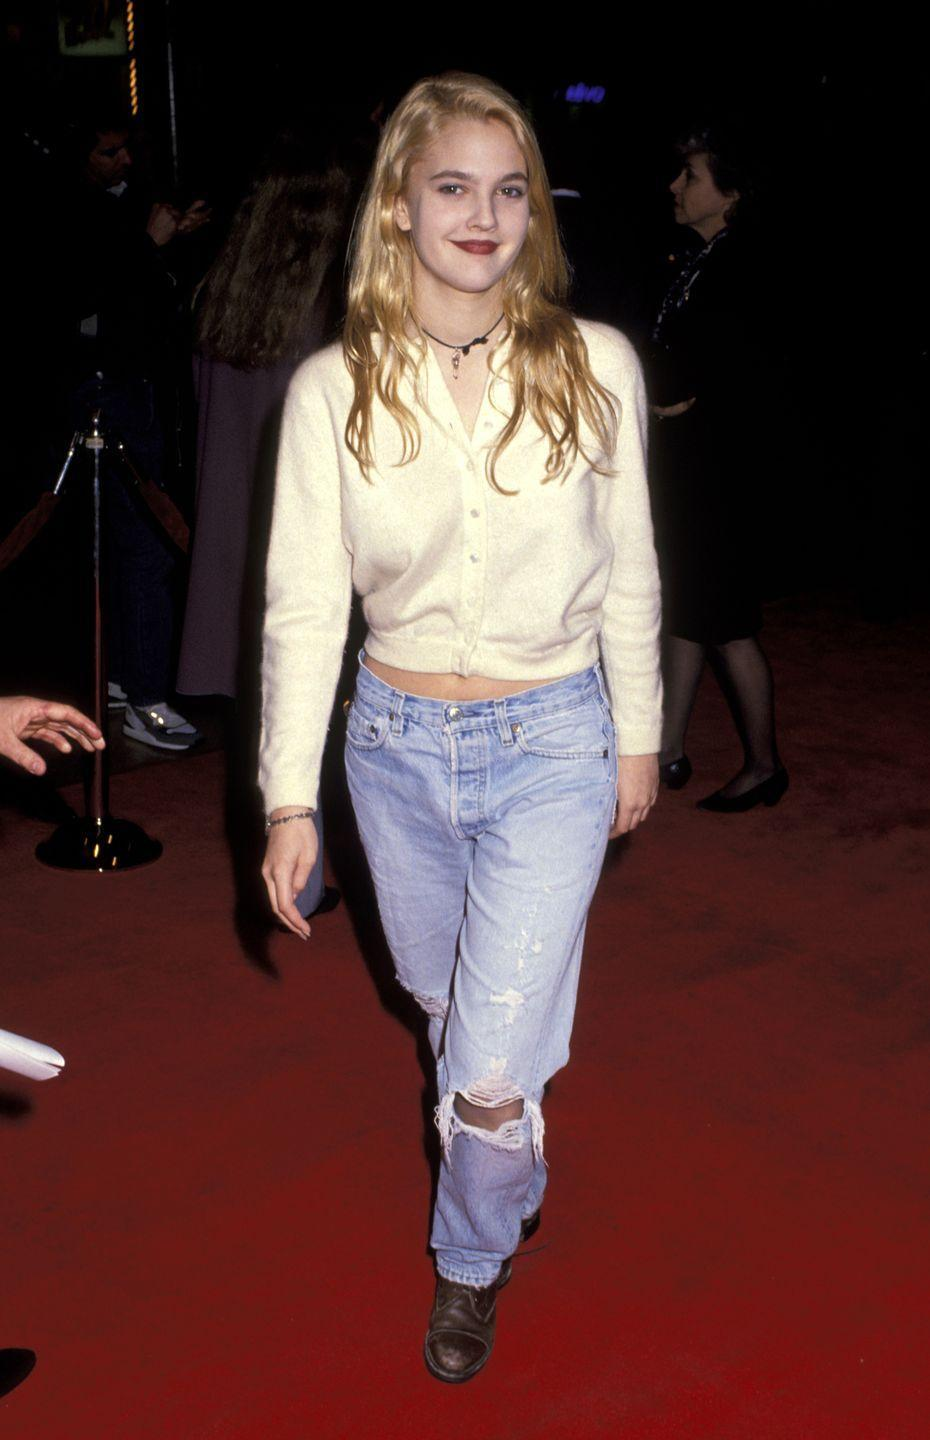 <p>At the <em>Guilty by Suspicion</em> movie premiere, Drew kept it extremely casual in a cardigan, ripped jeans, and brown boots. Is it just me, or did everyone in the '90s underdress for these things?! </p>